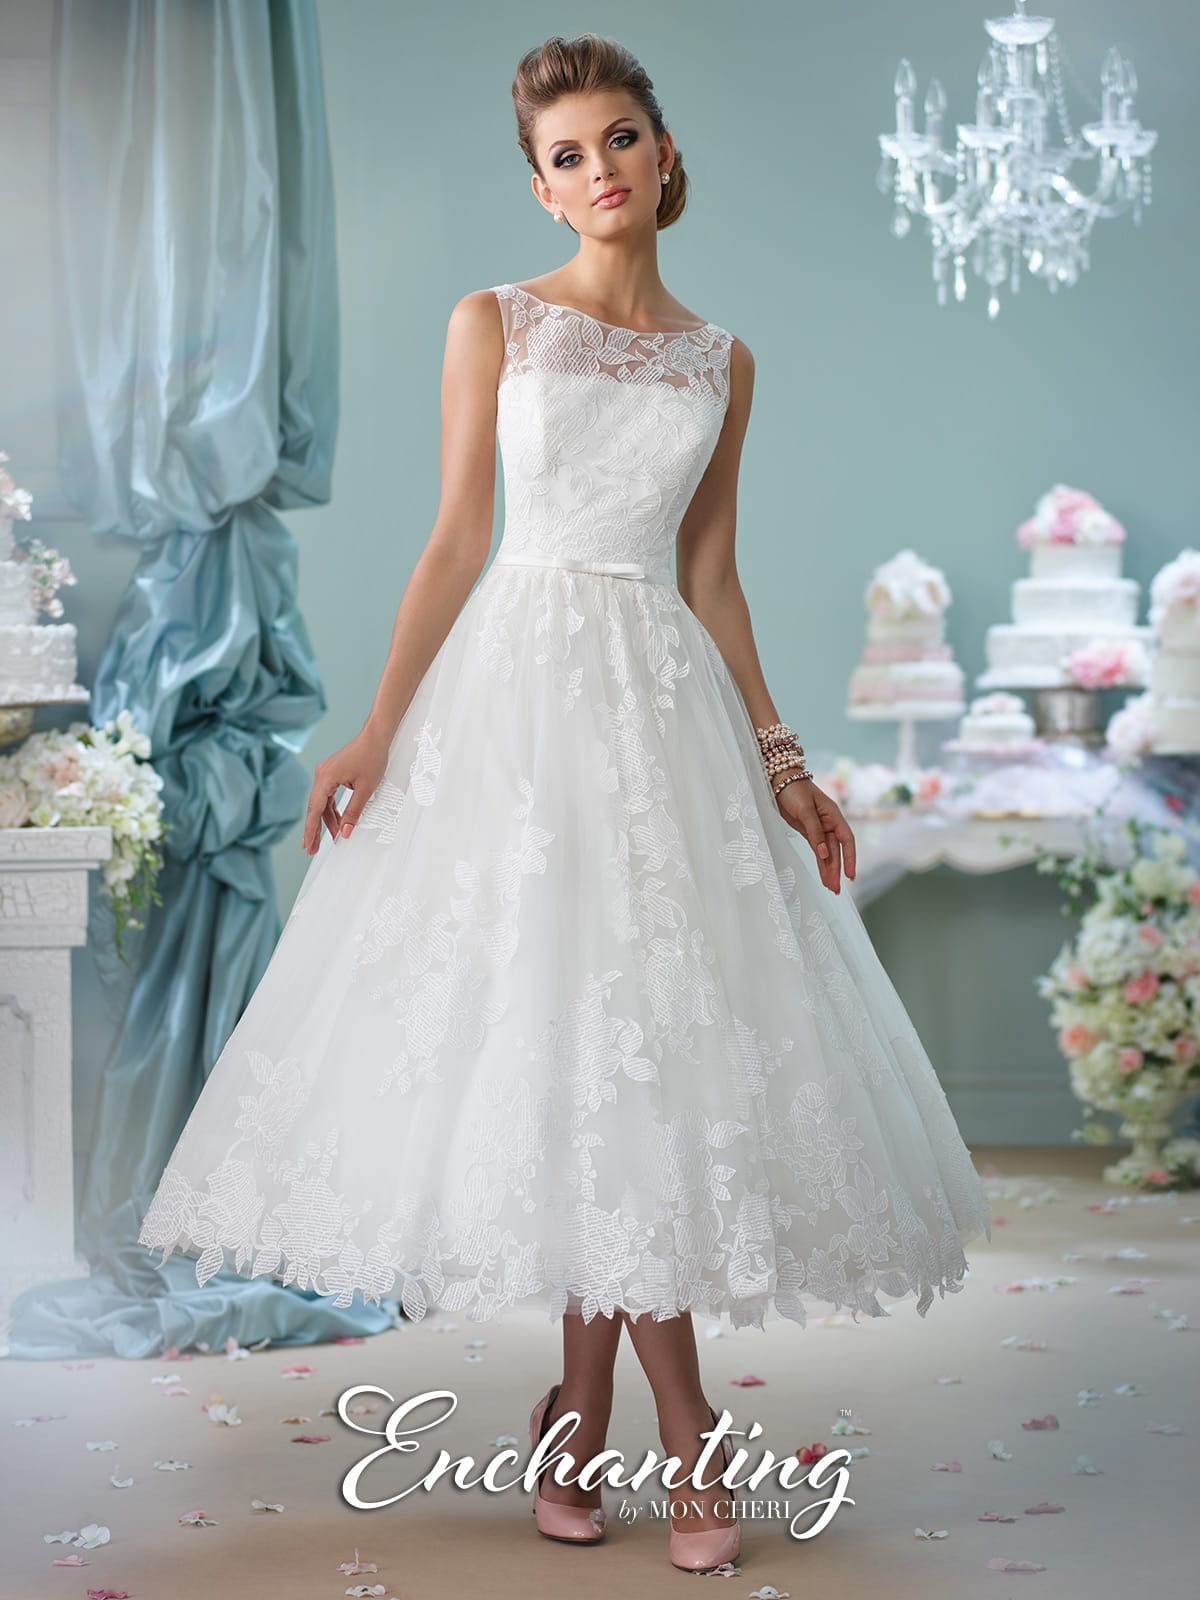 13 Mon Cheri Destination Wedding Dresses You Need To See Right Now ...